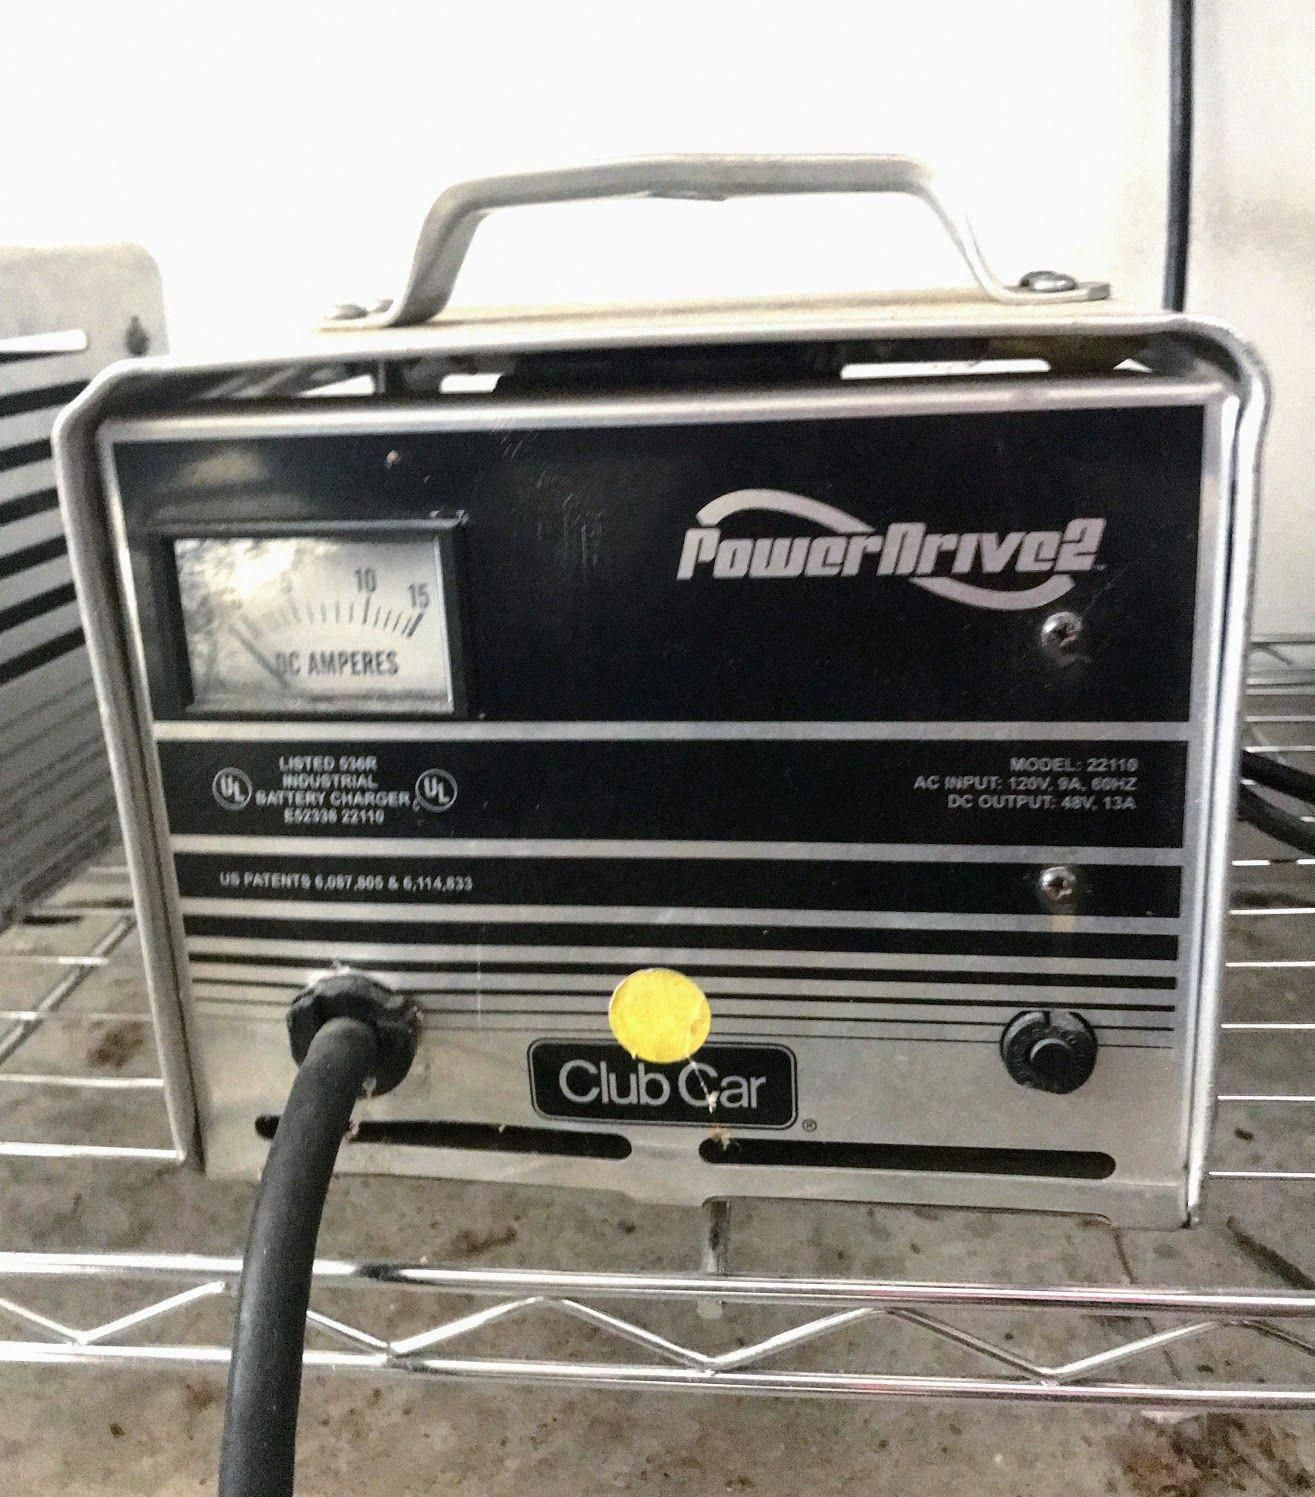 A Club Car battery charger usually comes with your